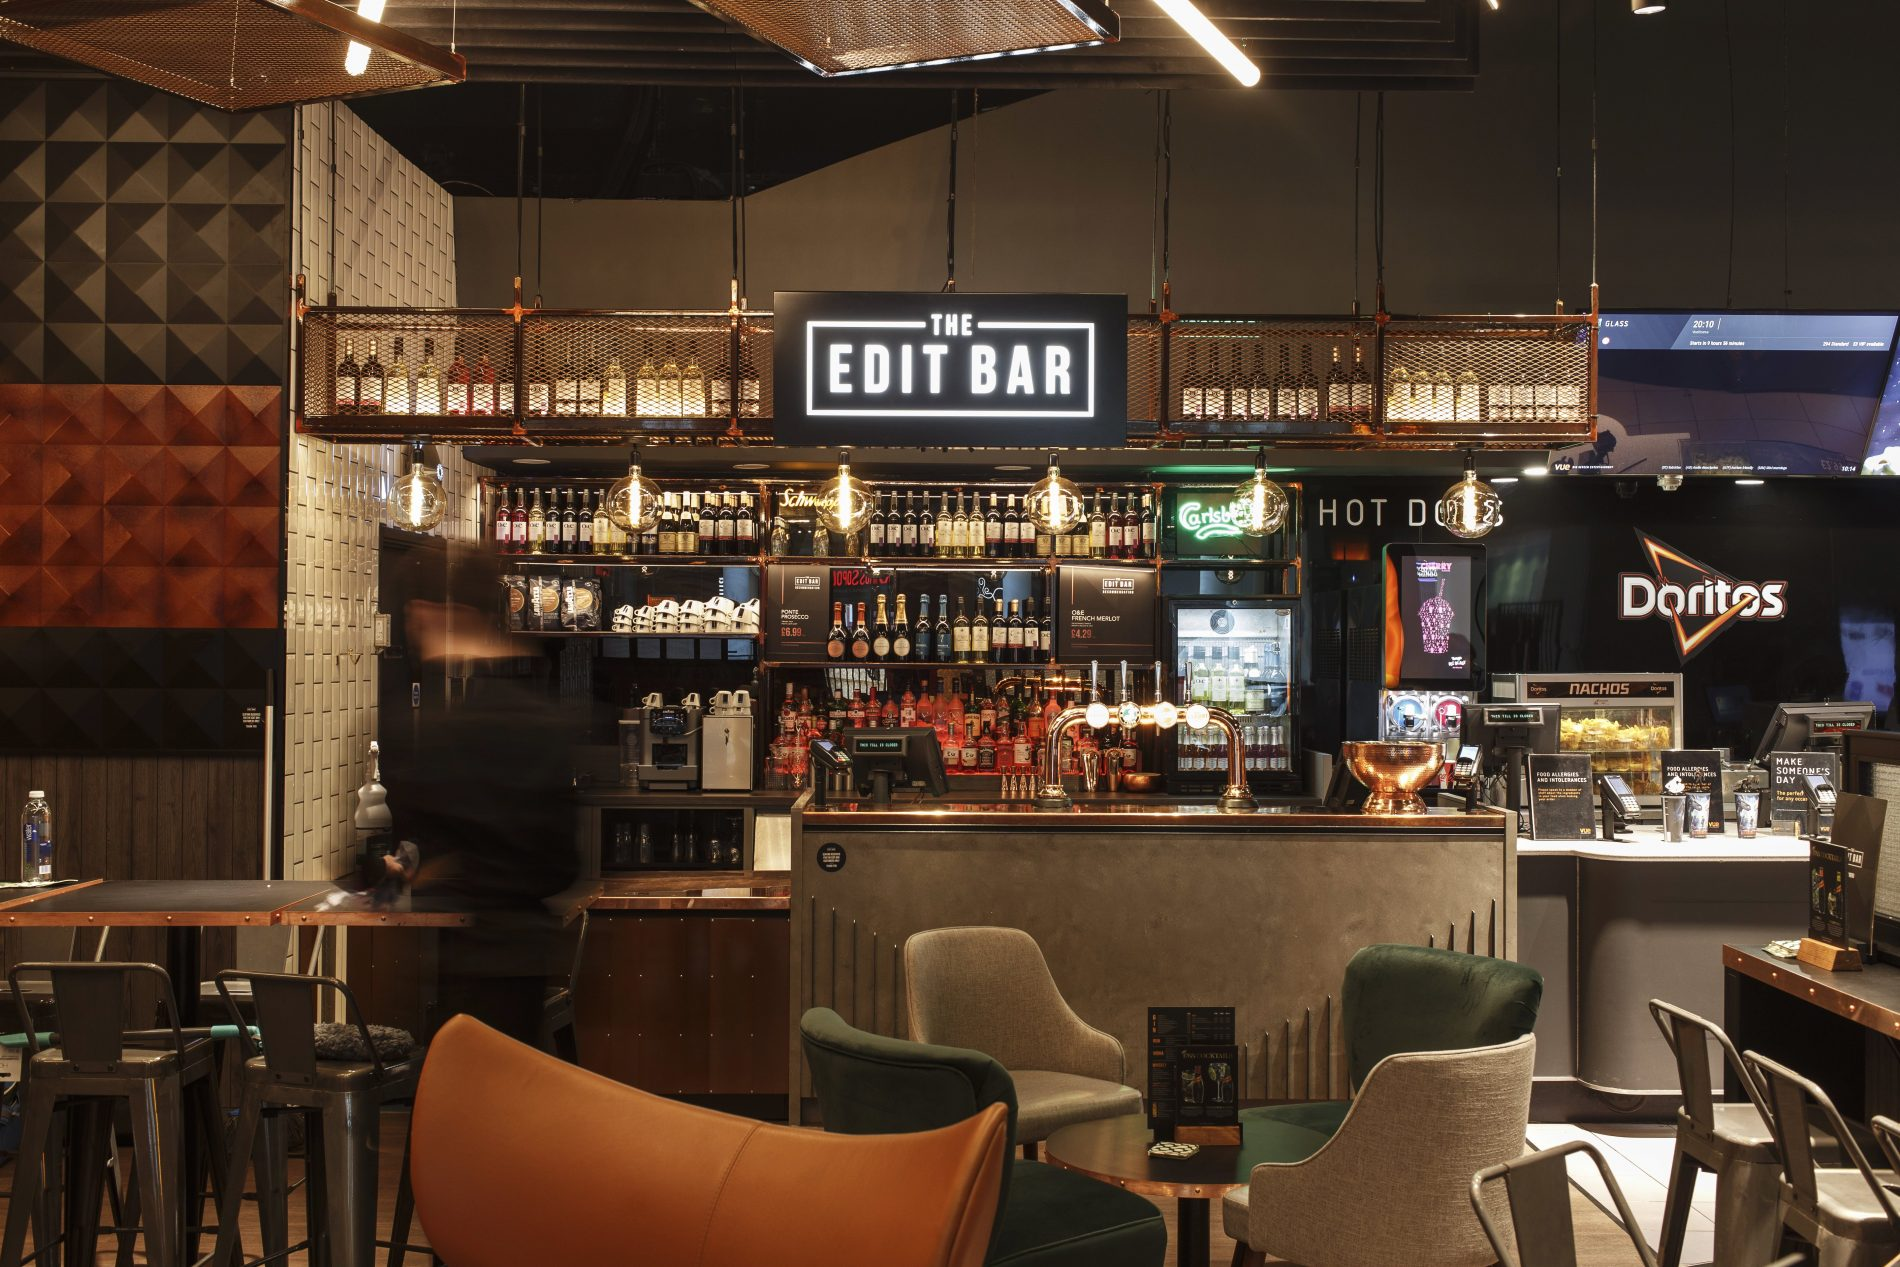 The Edit Bar at Vue Finchley road location